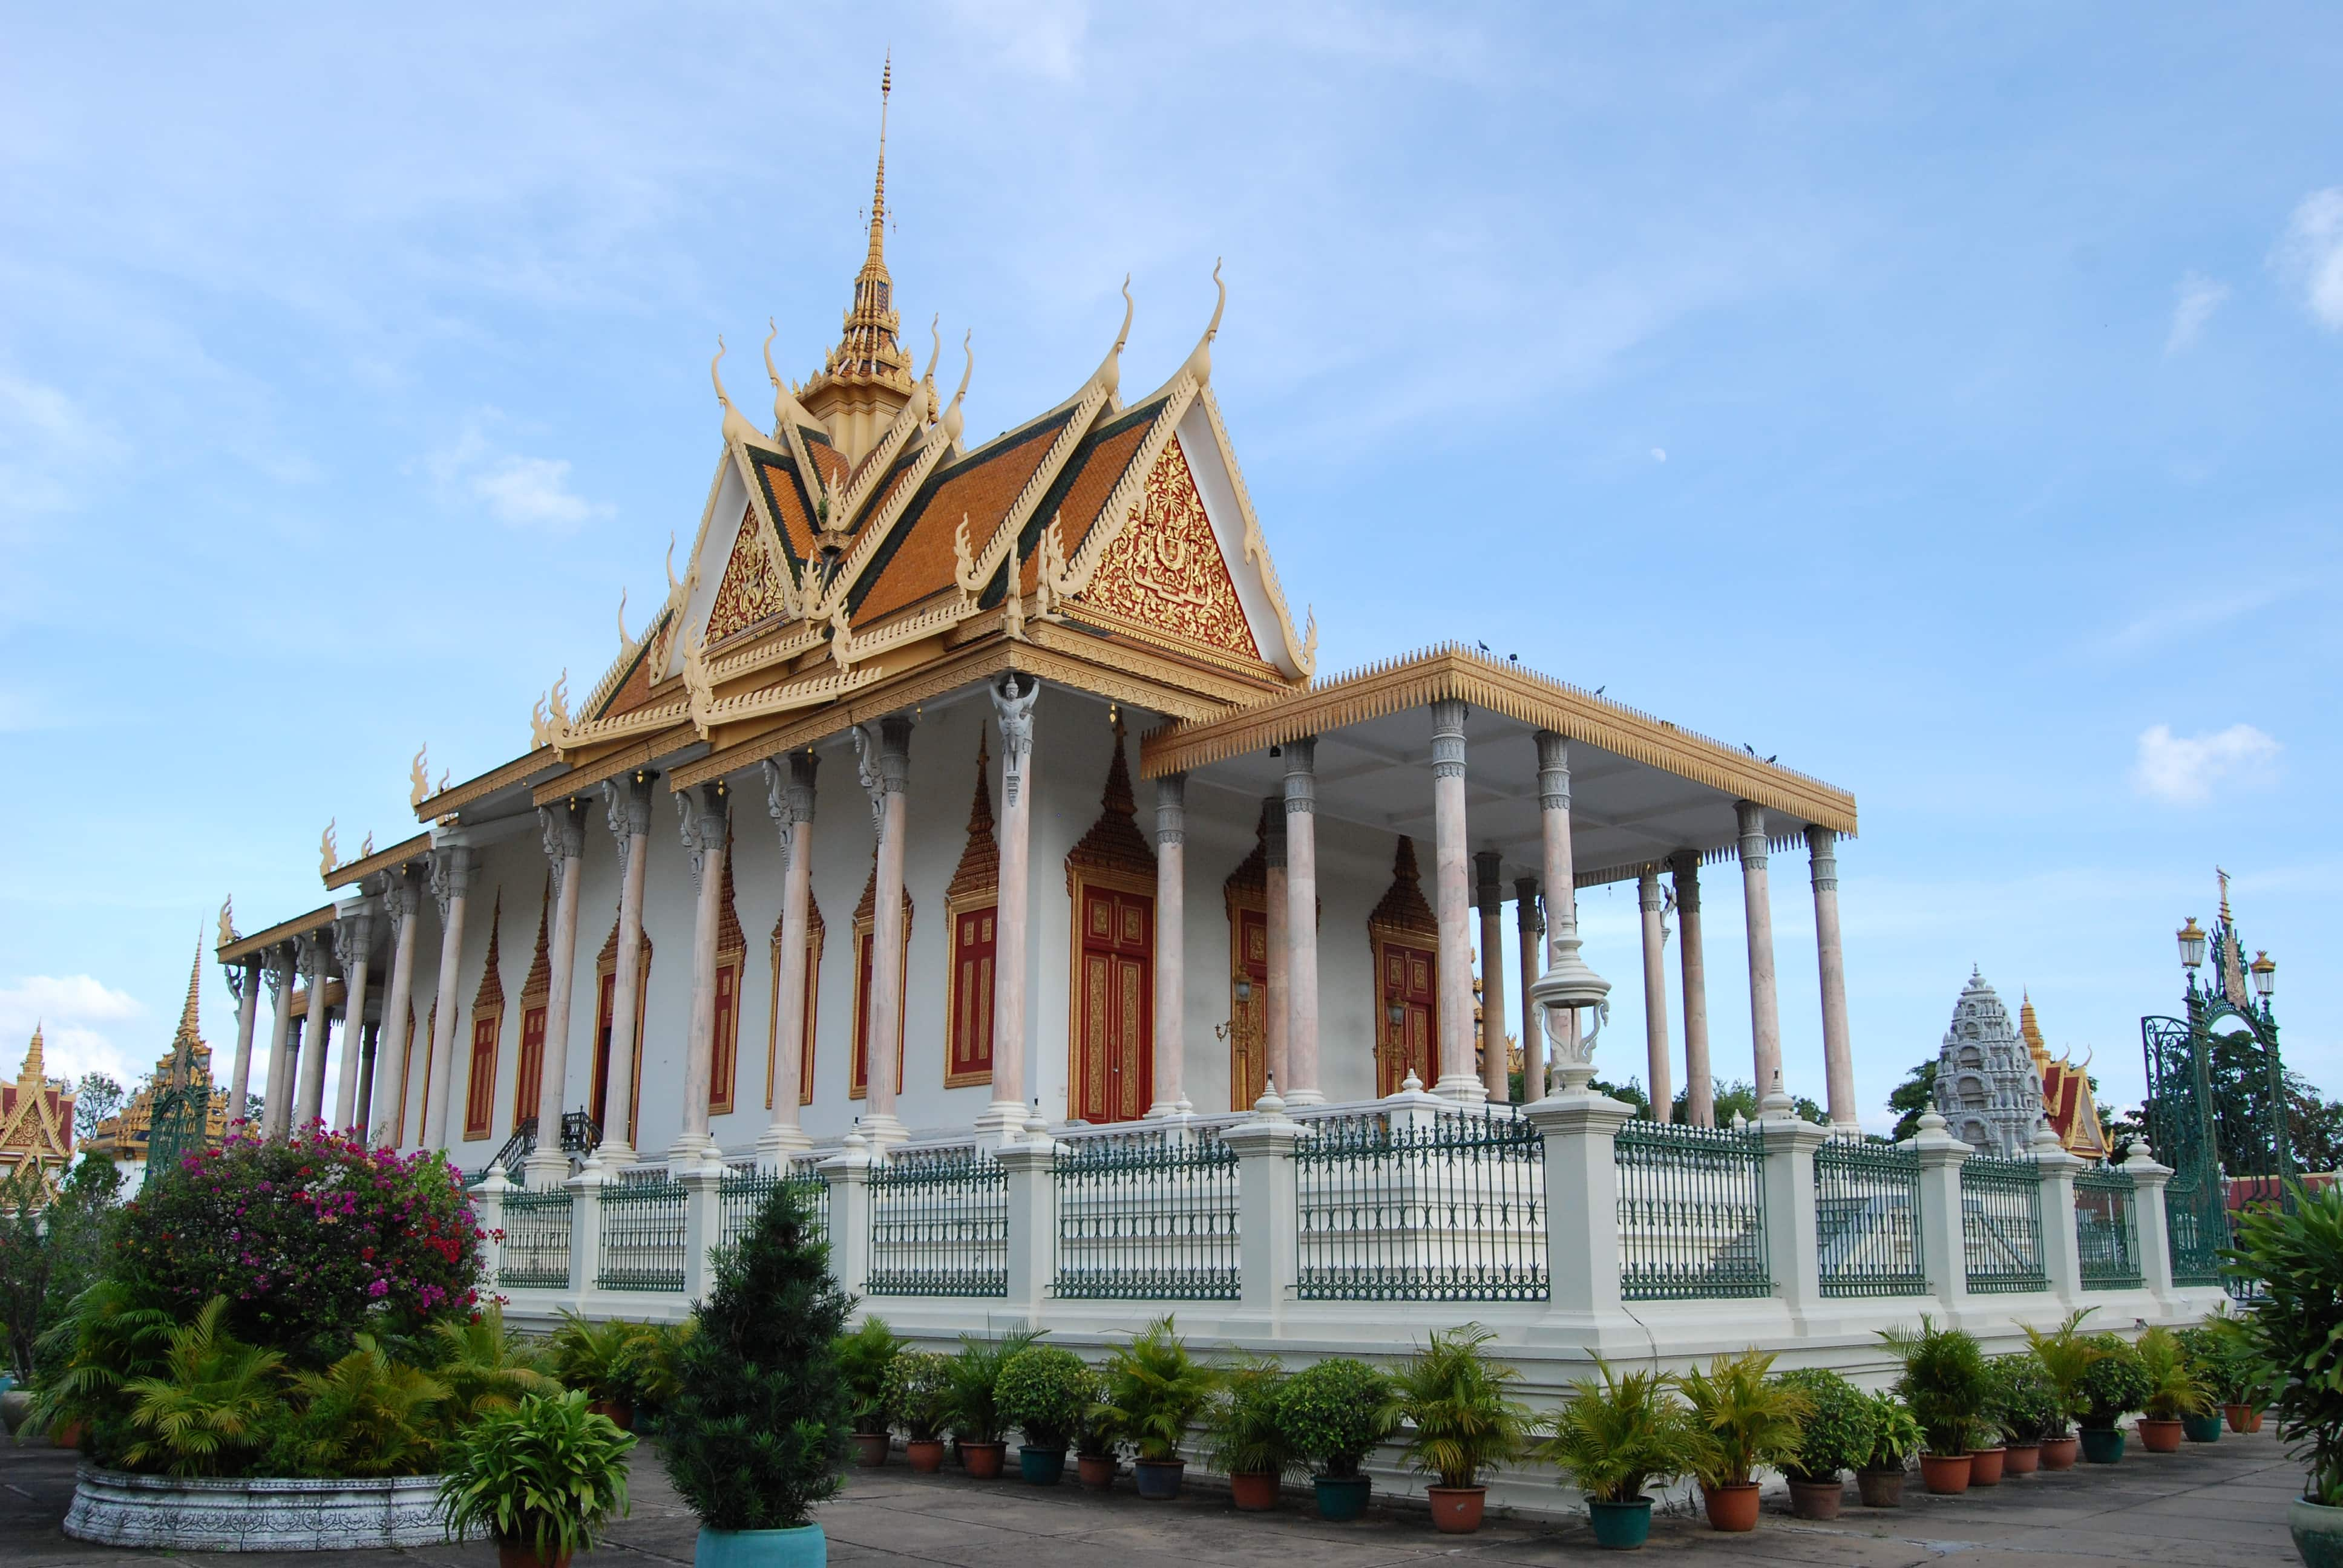 things to do in Phnom Penh, Silver Pagoda, Royal Palace in Phnom Penh, things to do in Phnom Penh, Phnom Penh travel guide